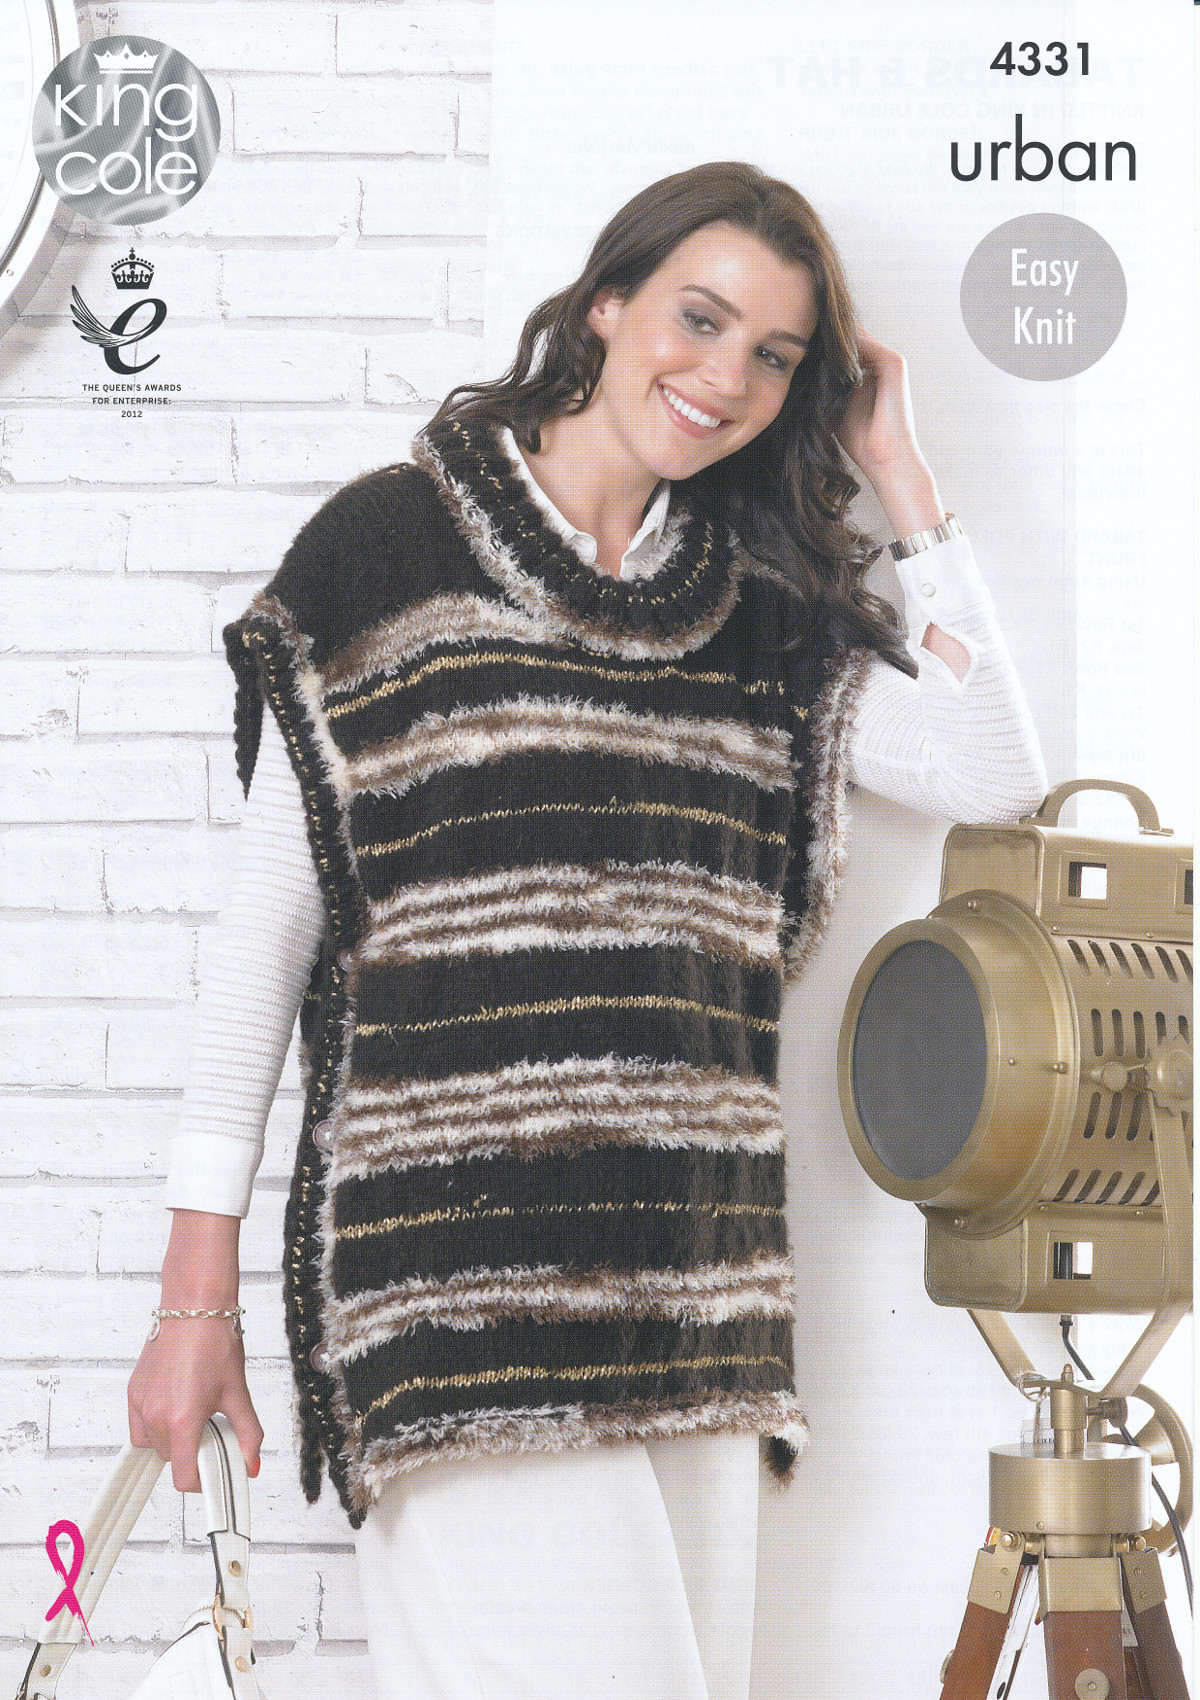 Free Knitting Patterns For Dogs Sweater : Womens Knitting Pattern King Cole Urban Easy Knit Cap Sleeve Tabards & Ha...